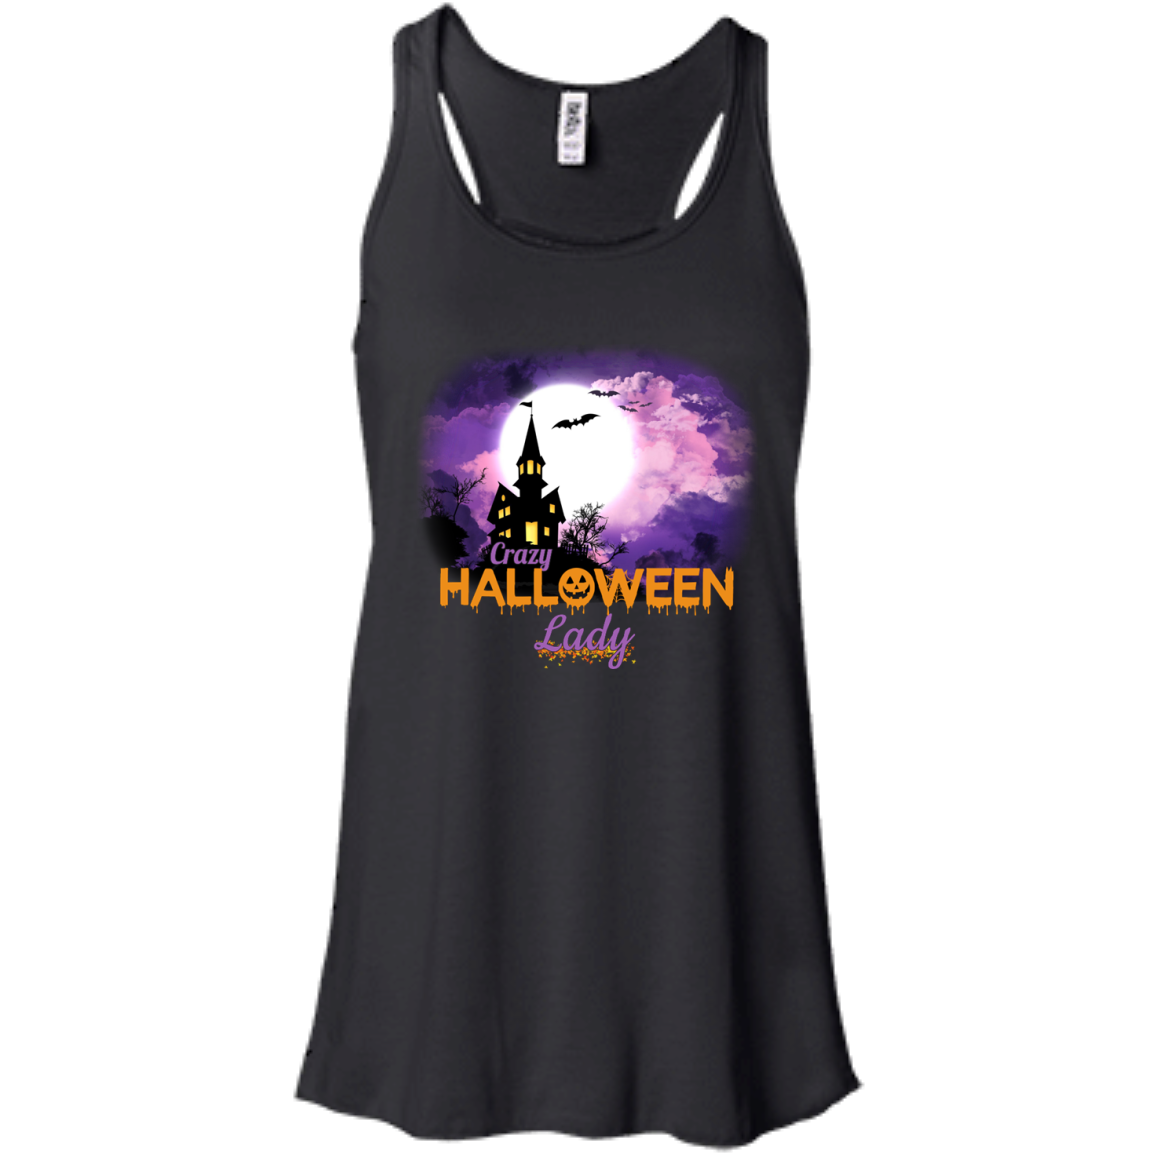 Crazy Halloween Decorations: Crazy Halloween Lady Shirt, Tank Top, Hoodie